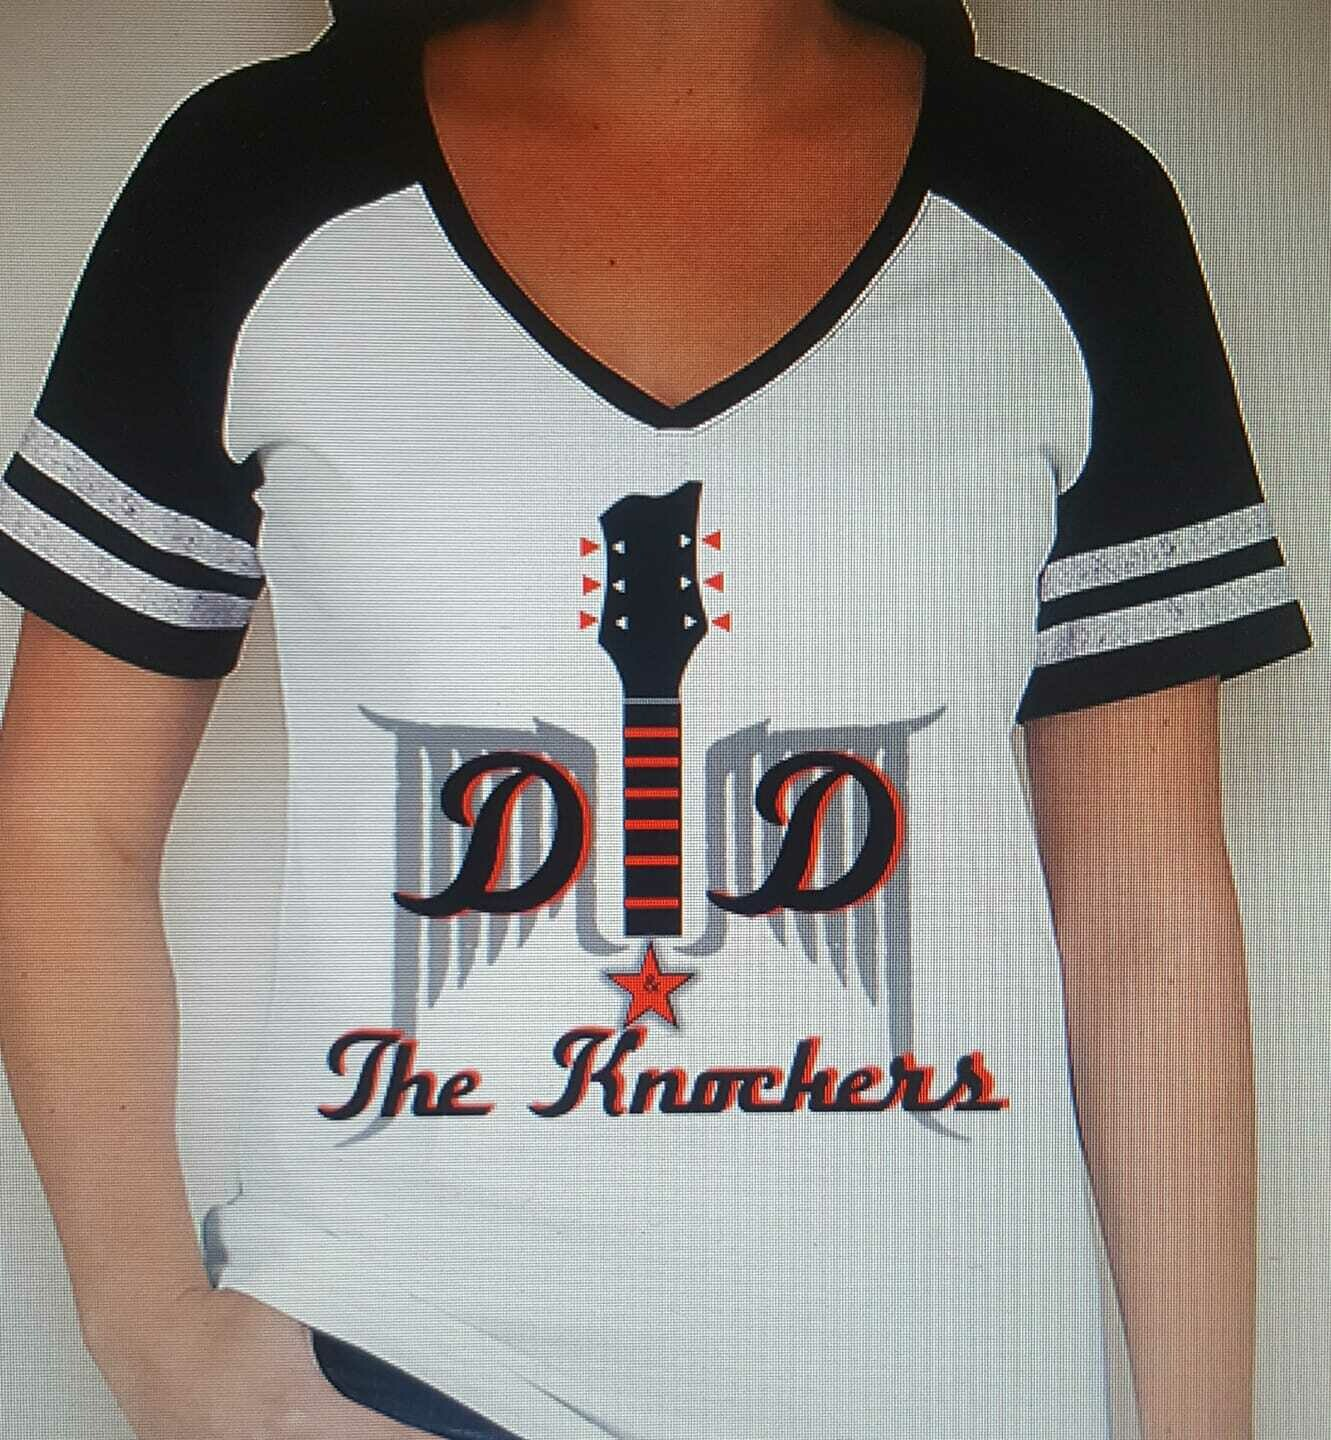 DD & The Knockers 38DD Jersey